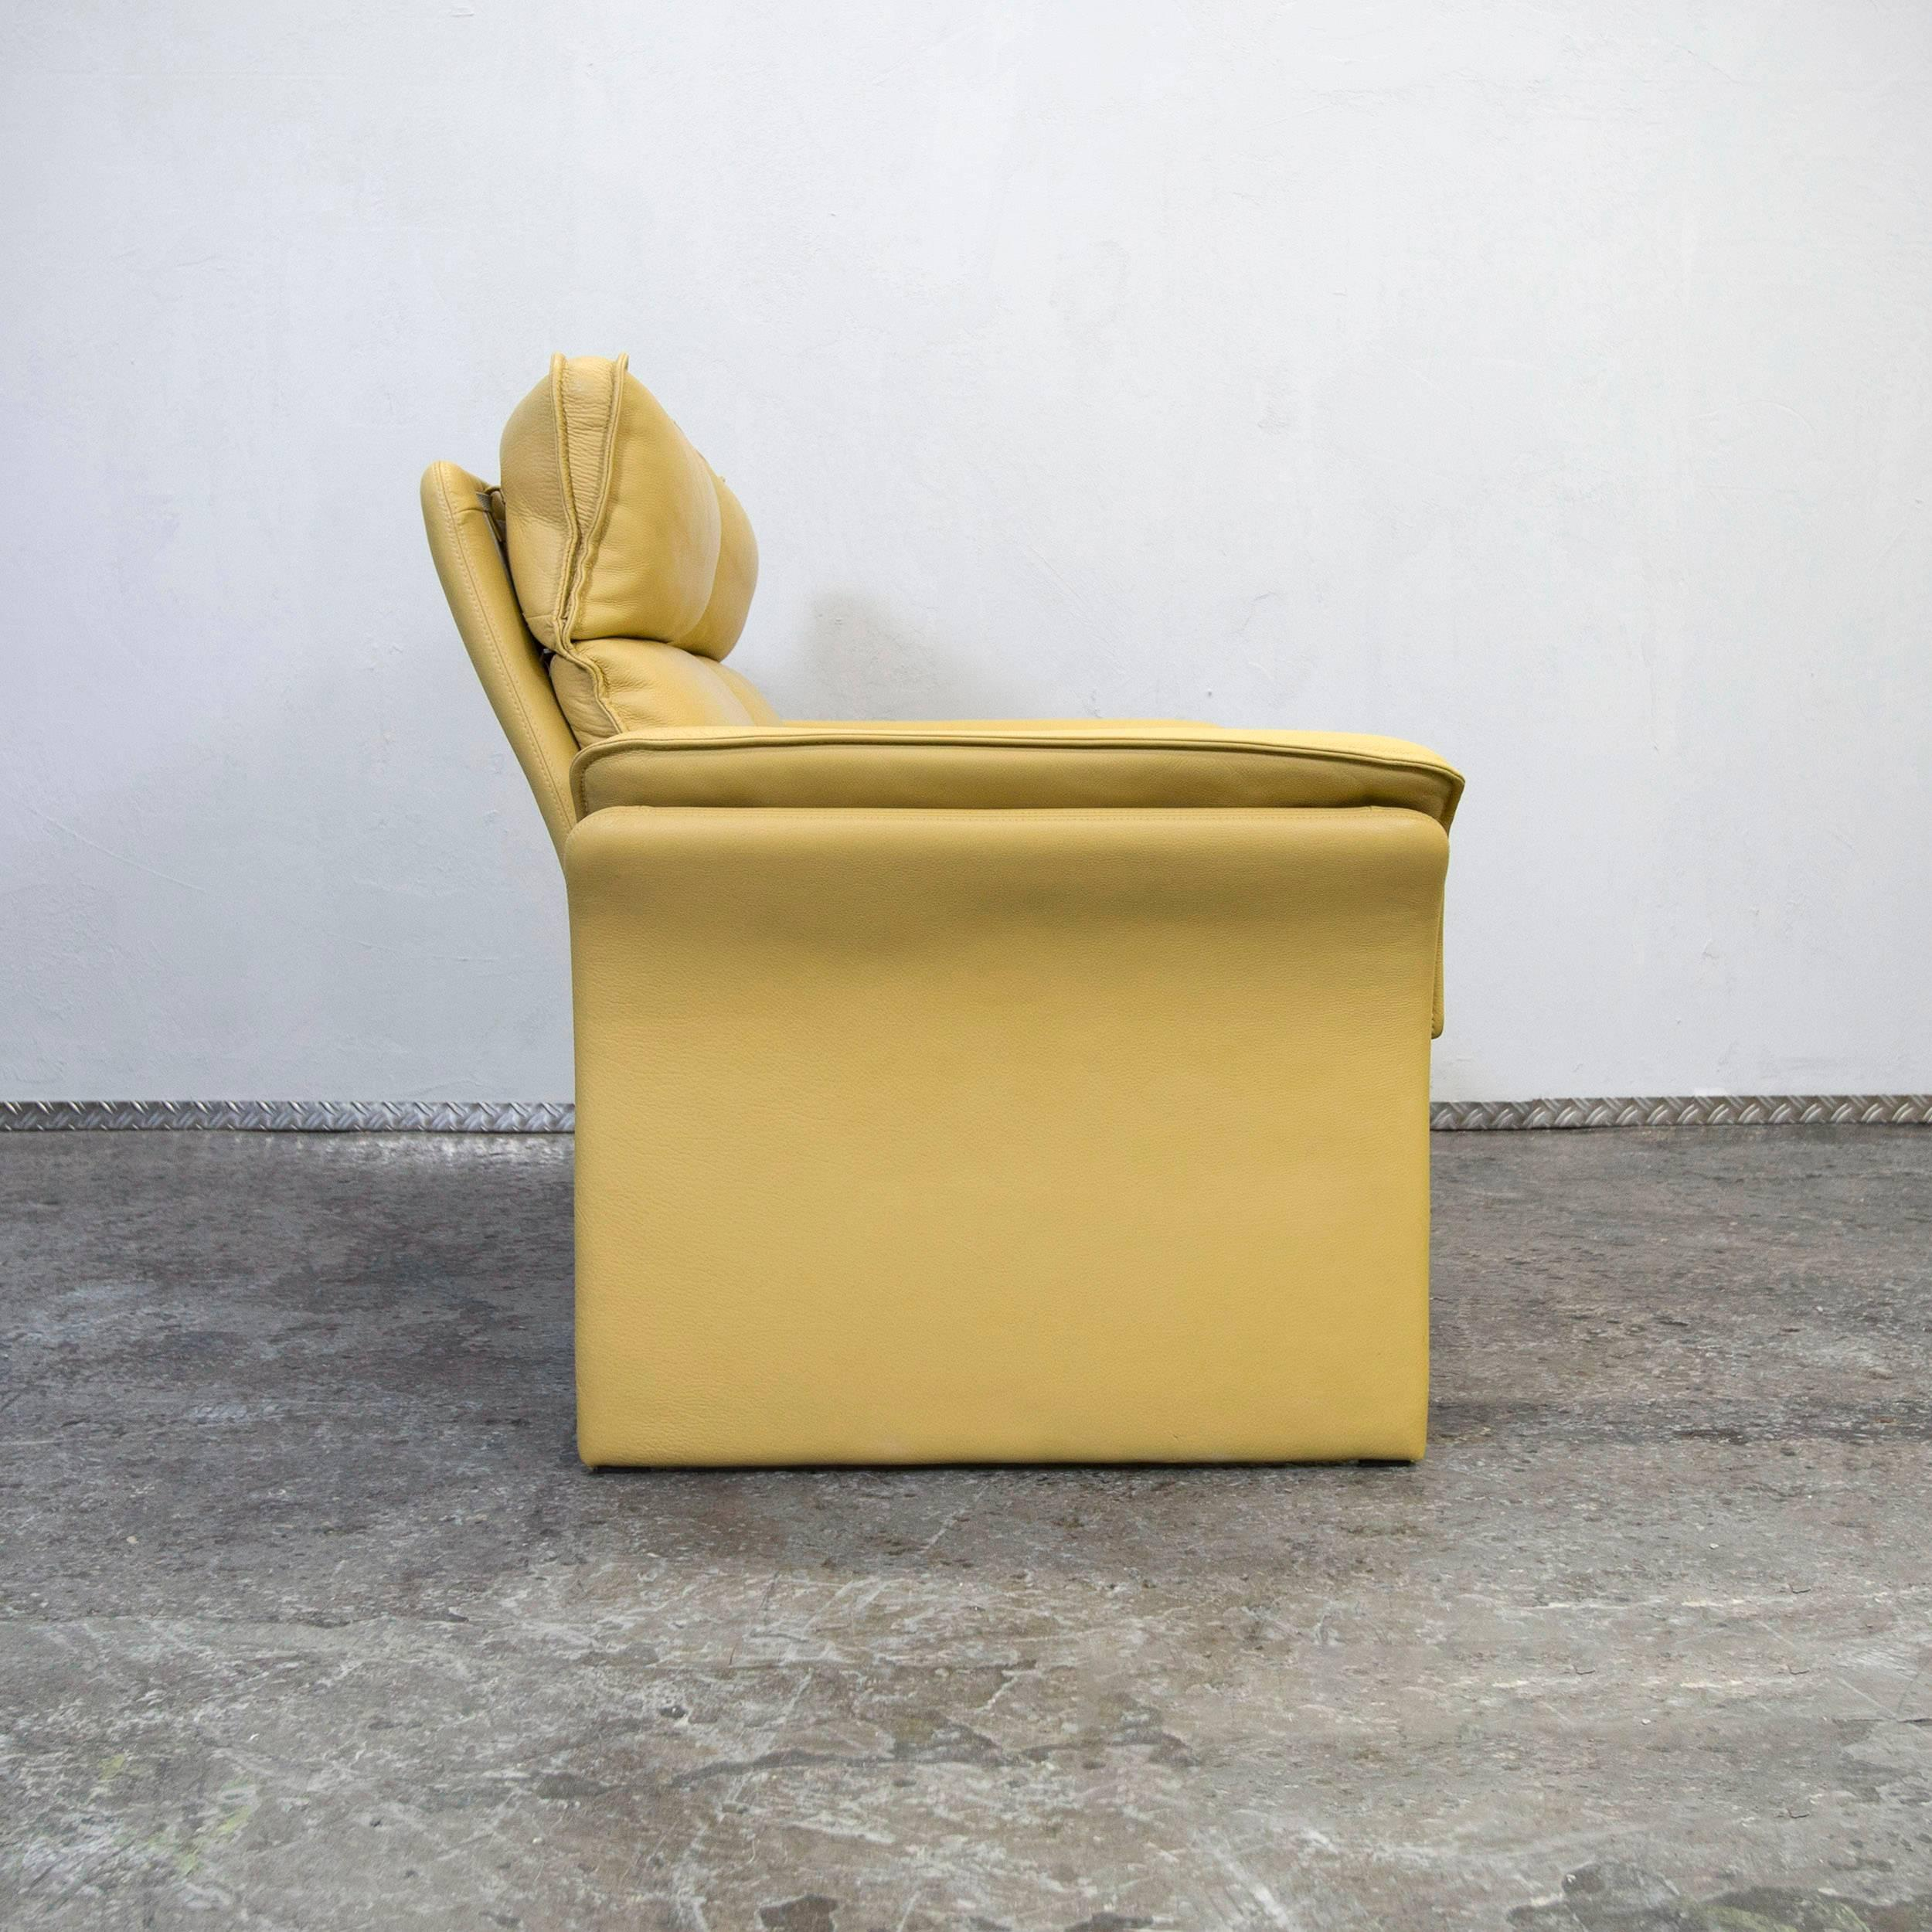 Sessel Gelb Leder Dreipunkt Designer Leather Sofa Mustard Yellow Two-seat